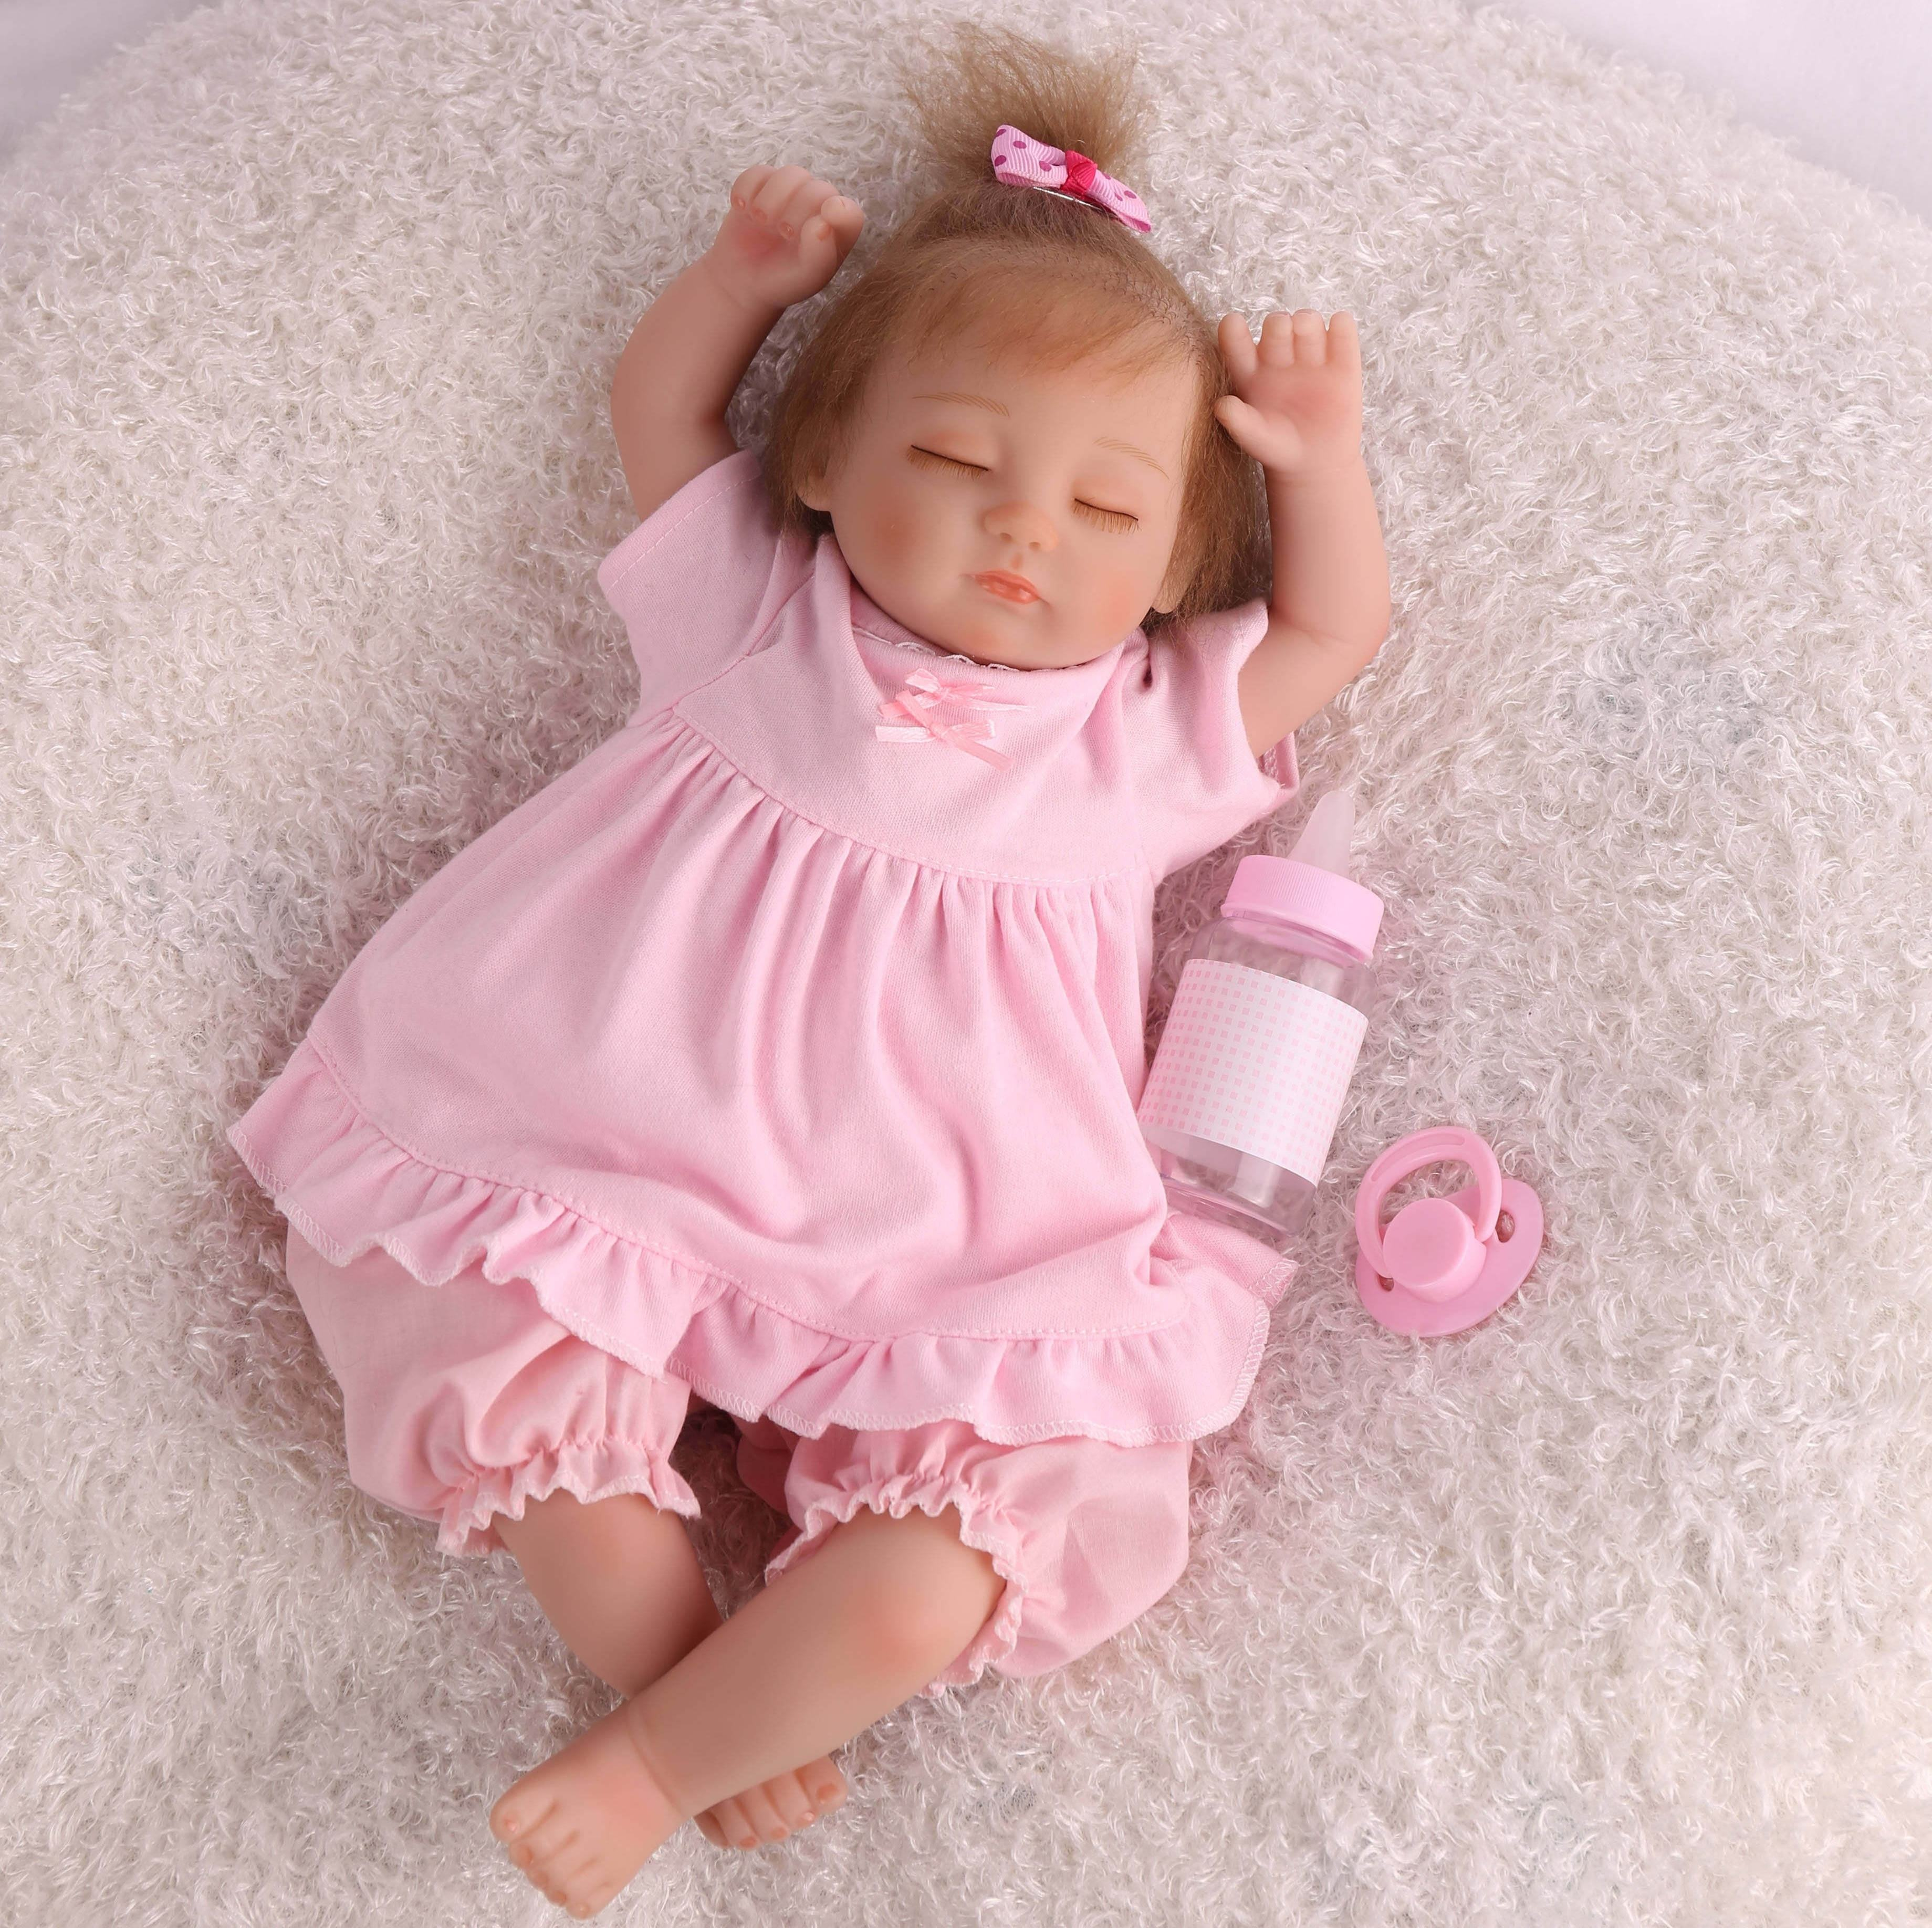 16 inch 40cm bebe reborn silicone cheap from china sleeping doll boneca bebe reborn reborn baby dolls for kids